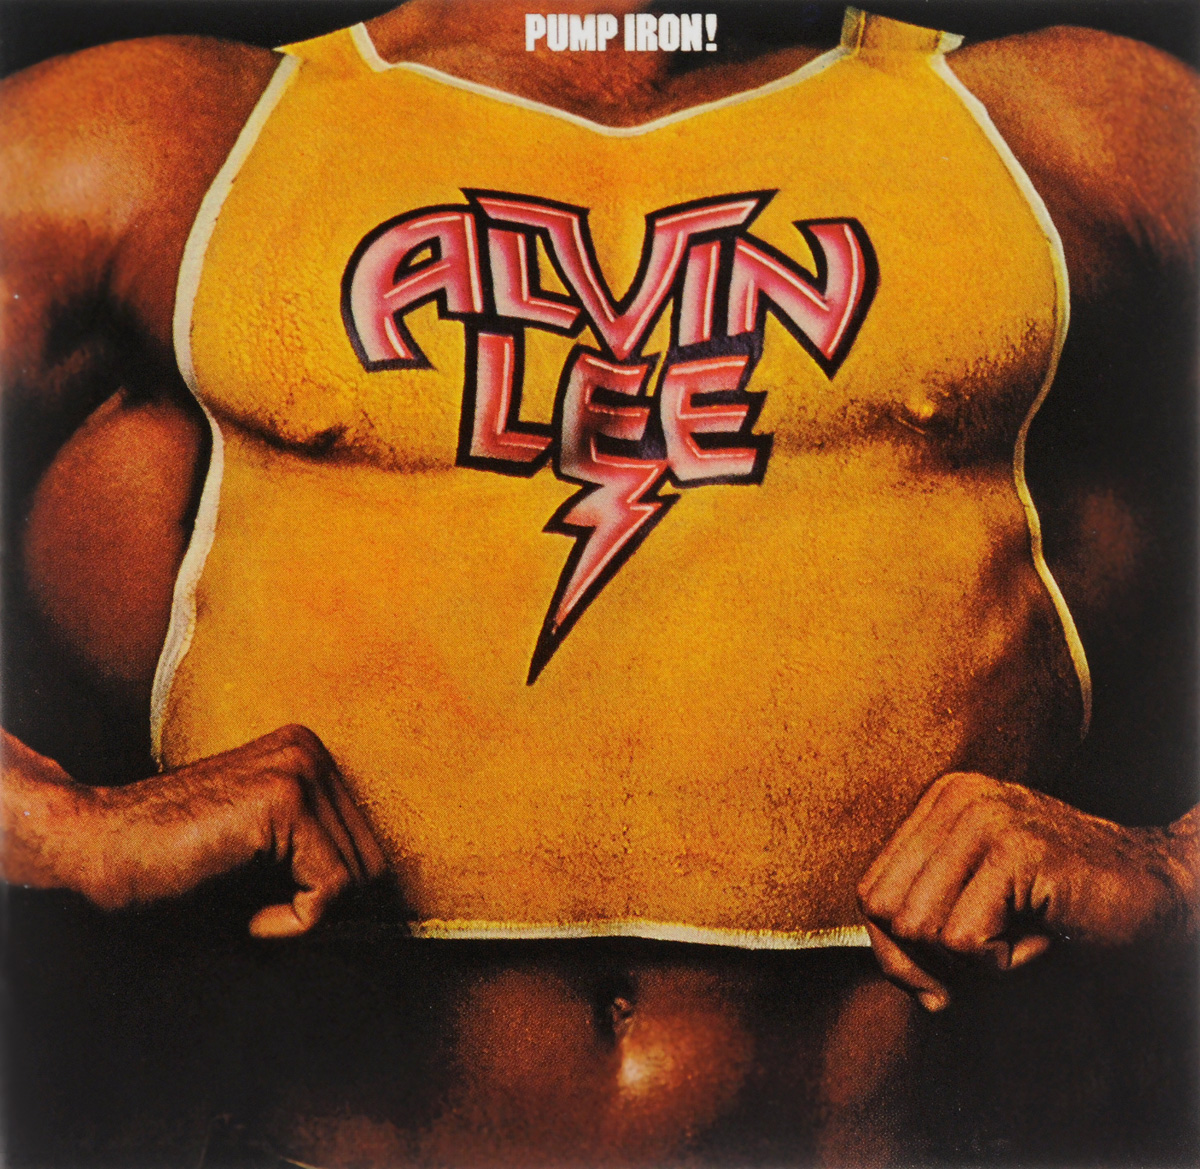 Alvin Lee. Pump Iron